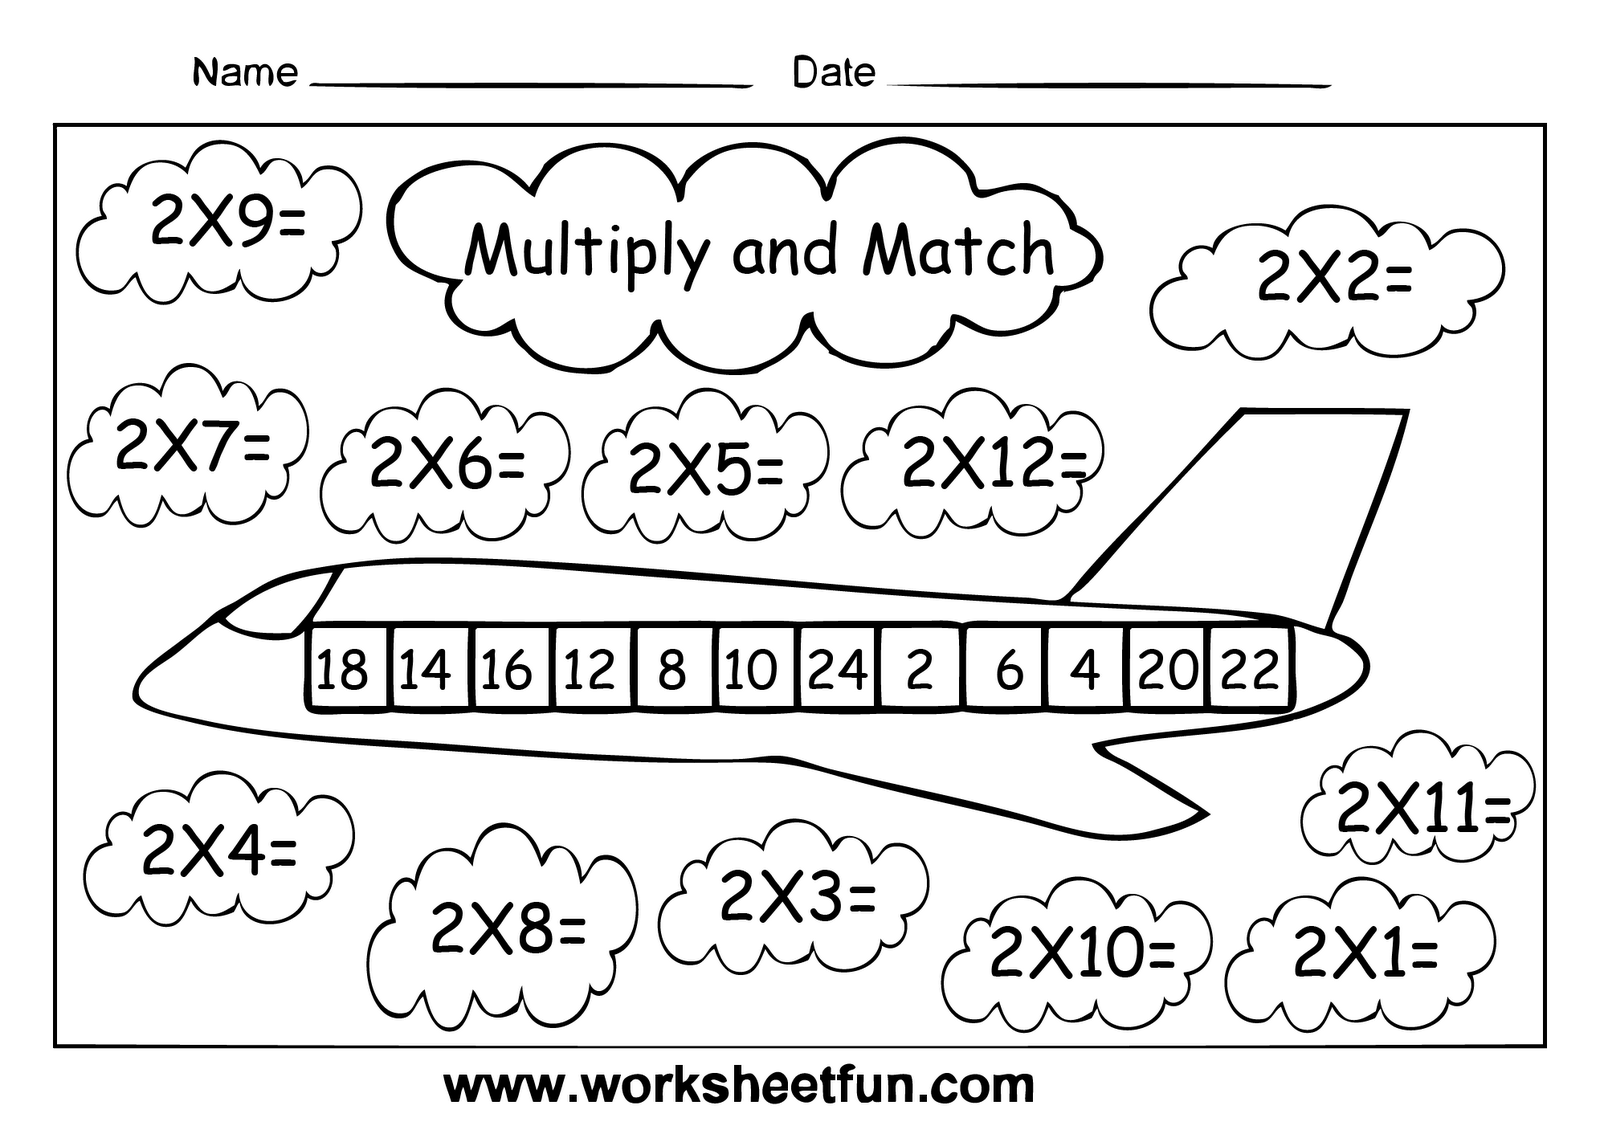 Worksheets Multiplication Games Worksheets worksheet 10001294 multiplication worksheets 3 times tables homework sheets tables